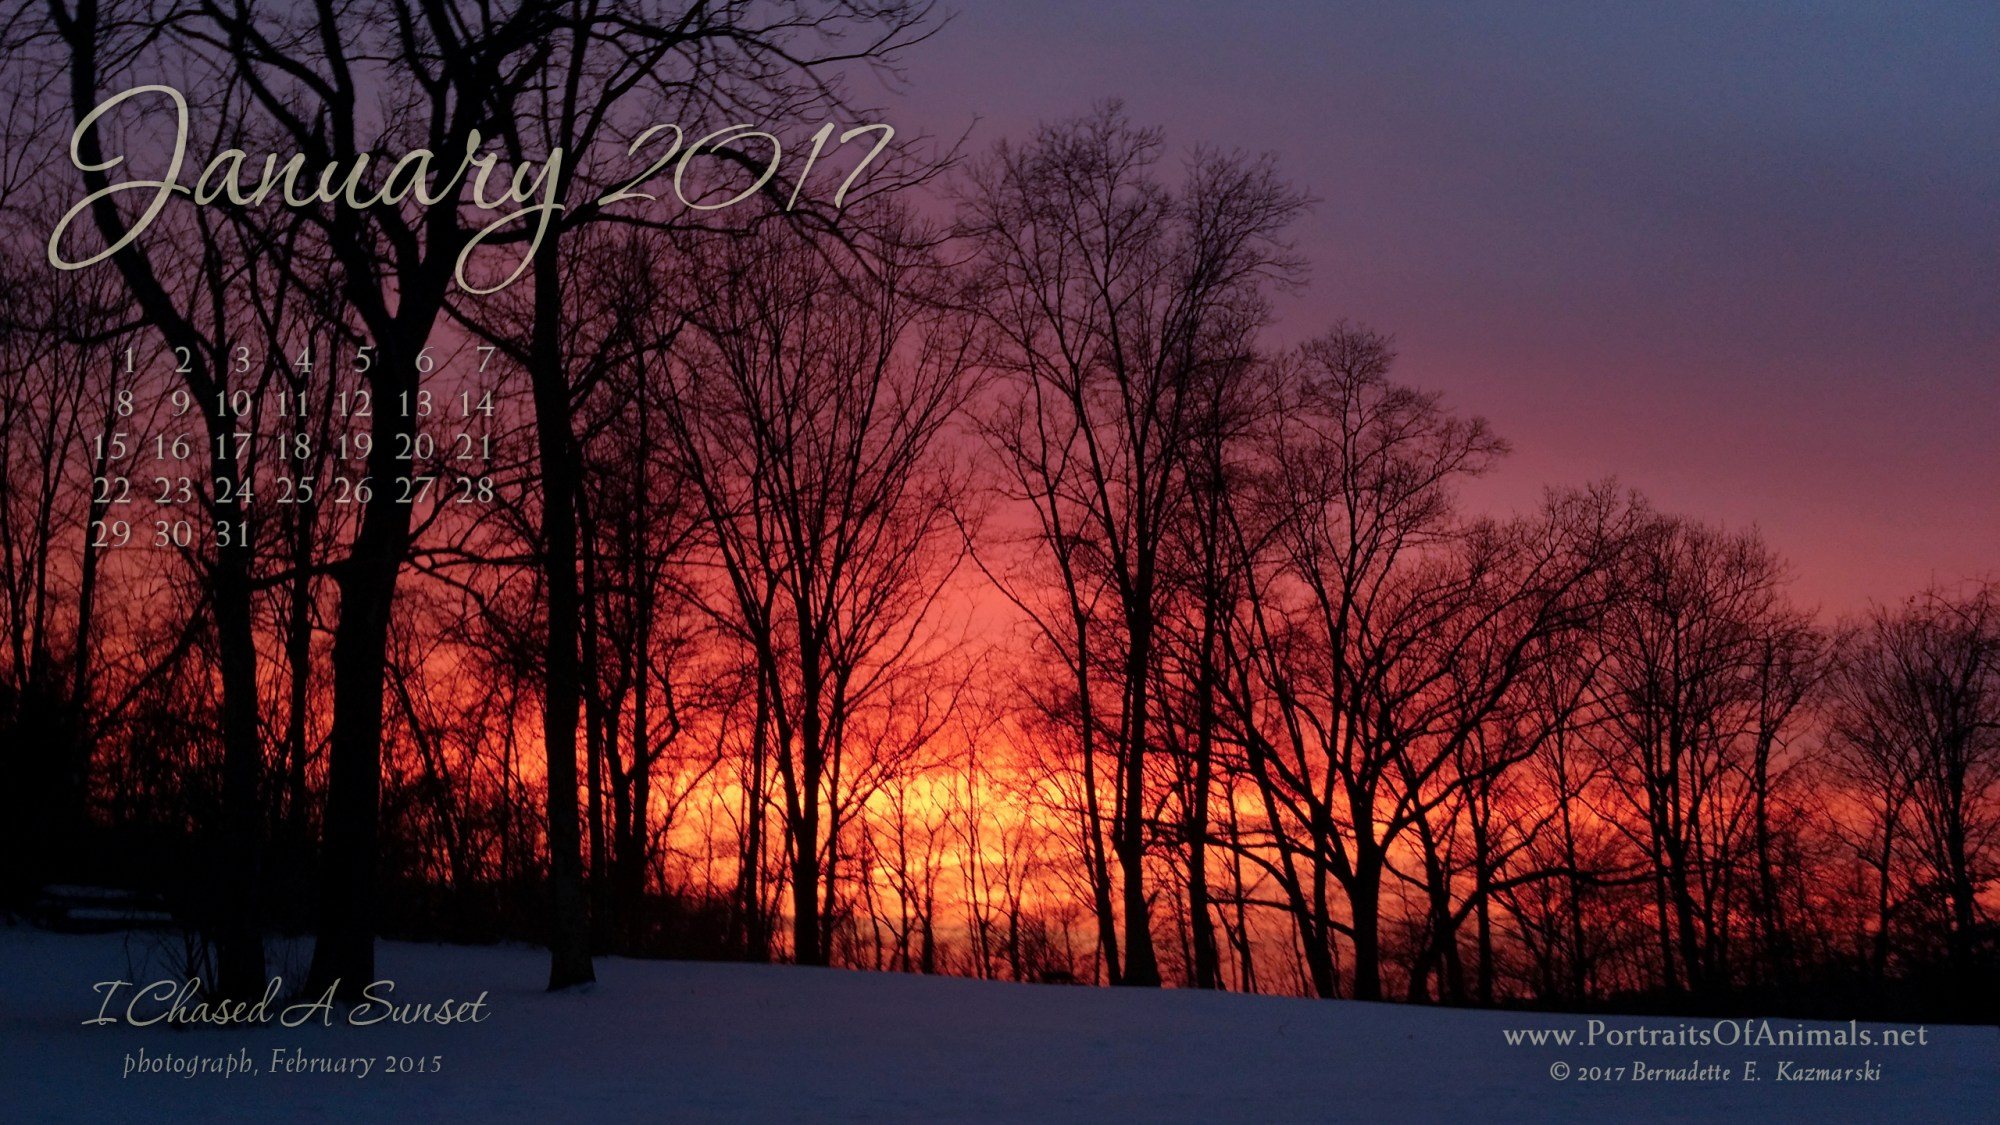 """""""I Chased a Sunset"""" desktop calendar 2560 x 1440 for HD and wide screens."""